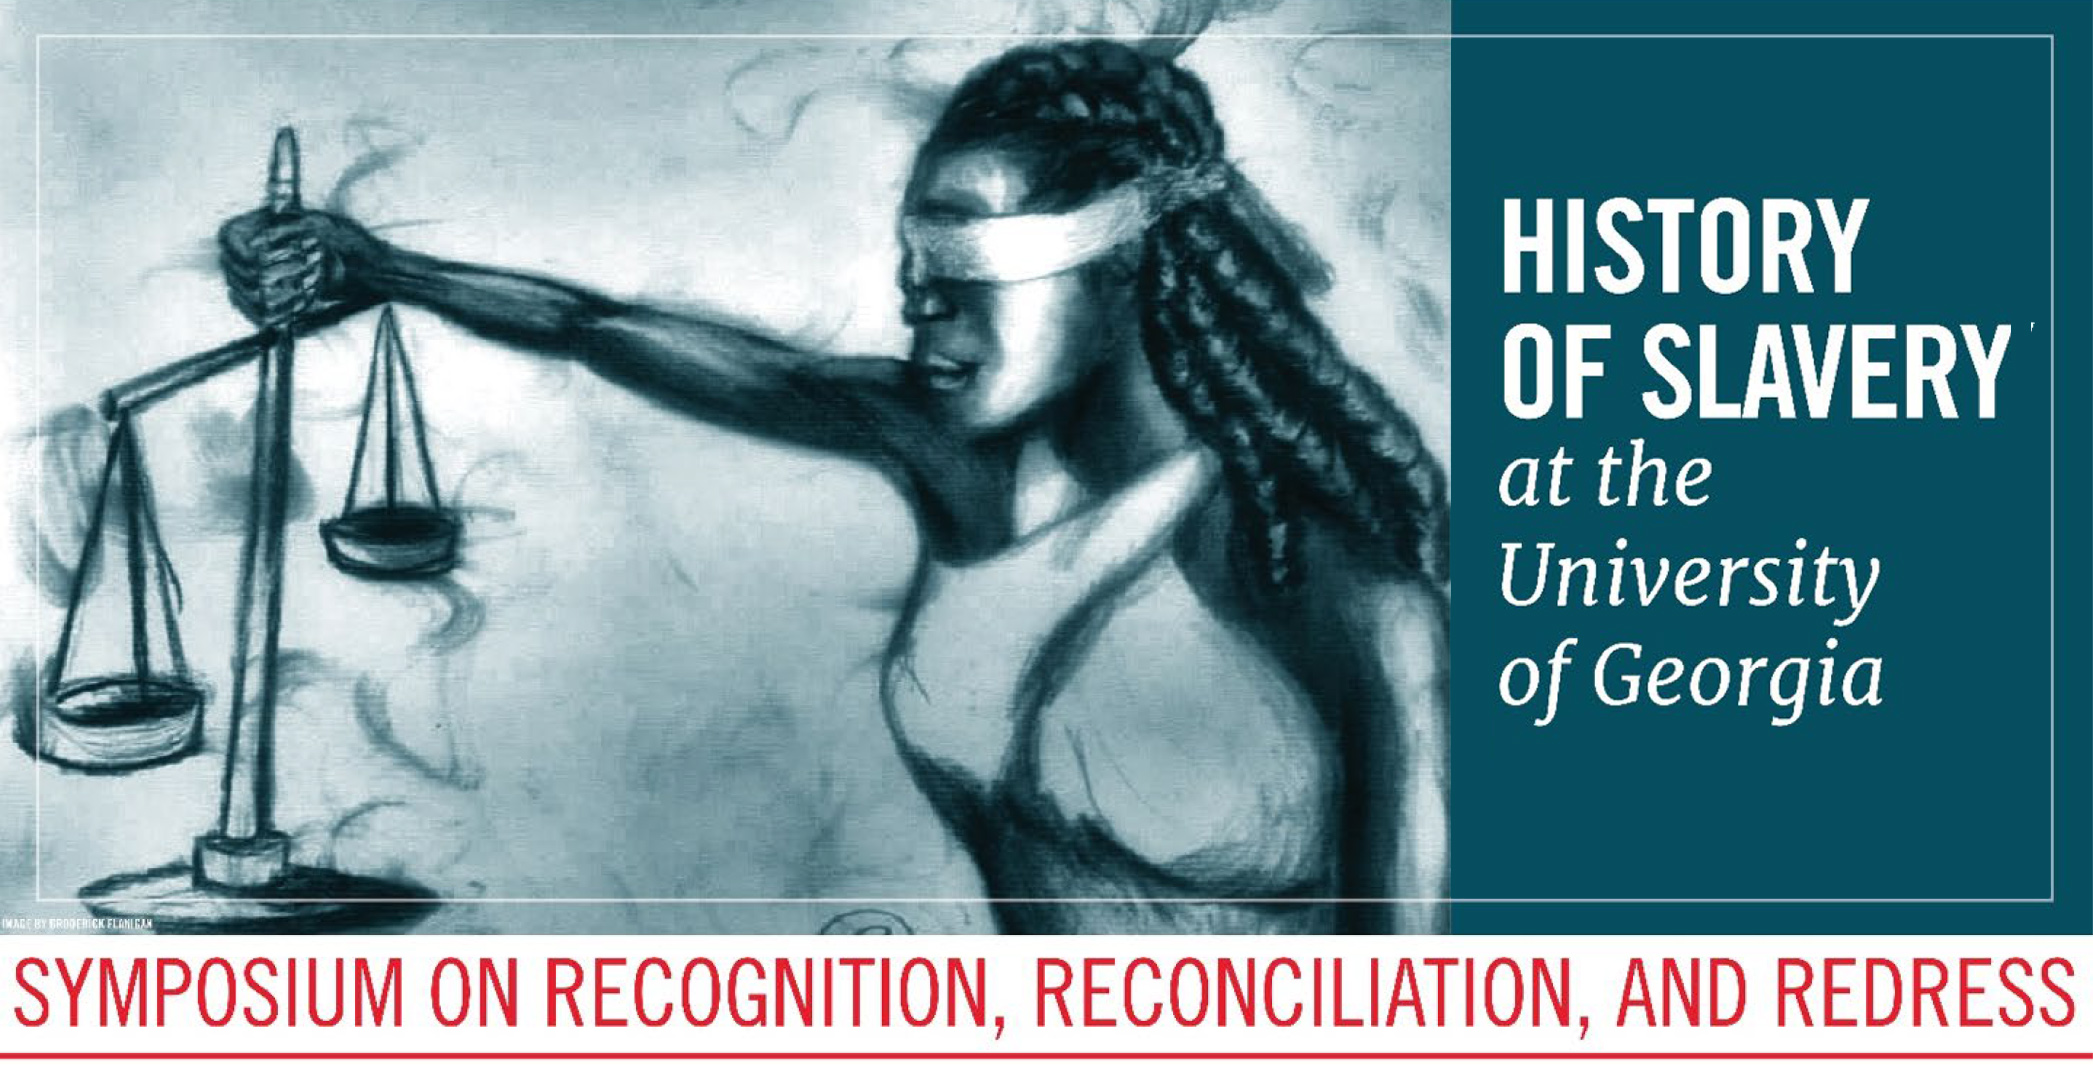 CED co-sponsors symposium on history of slavery at UGA